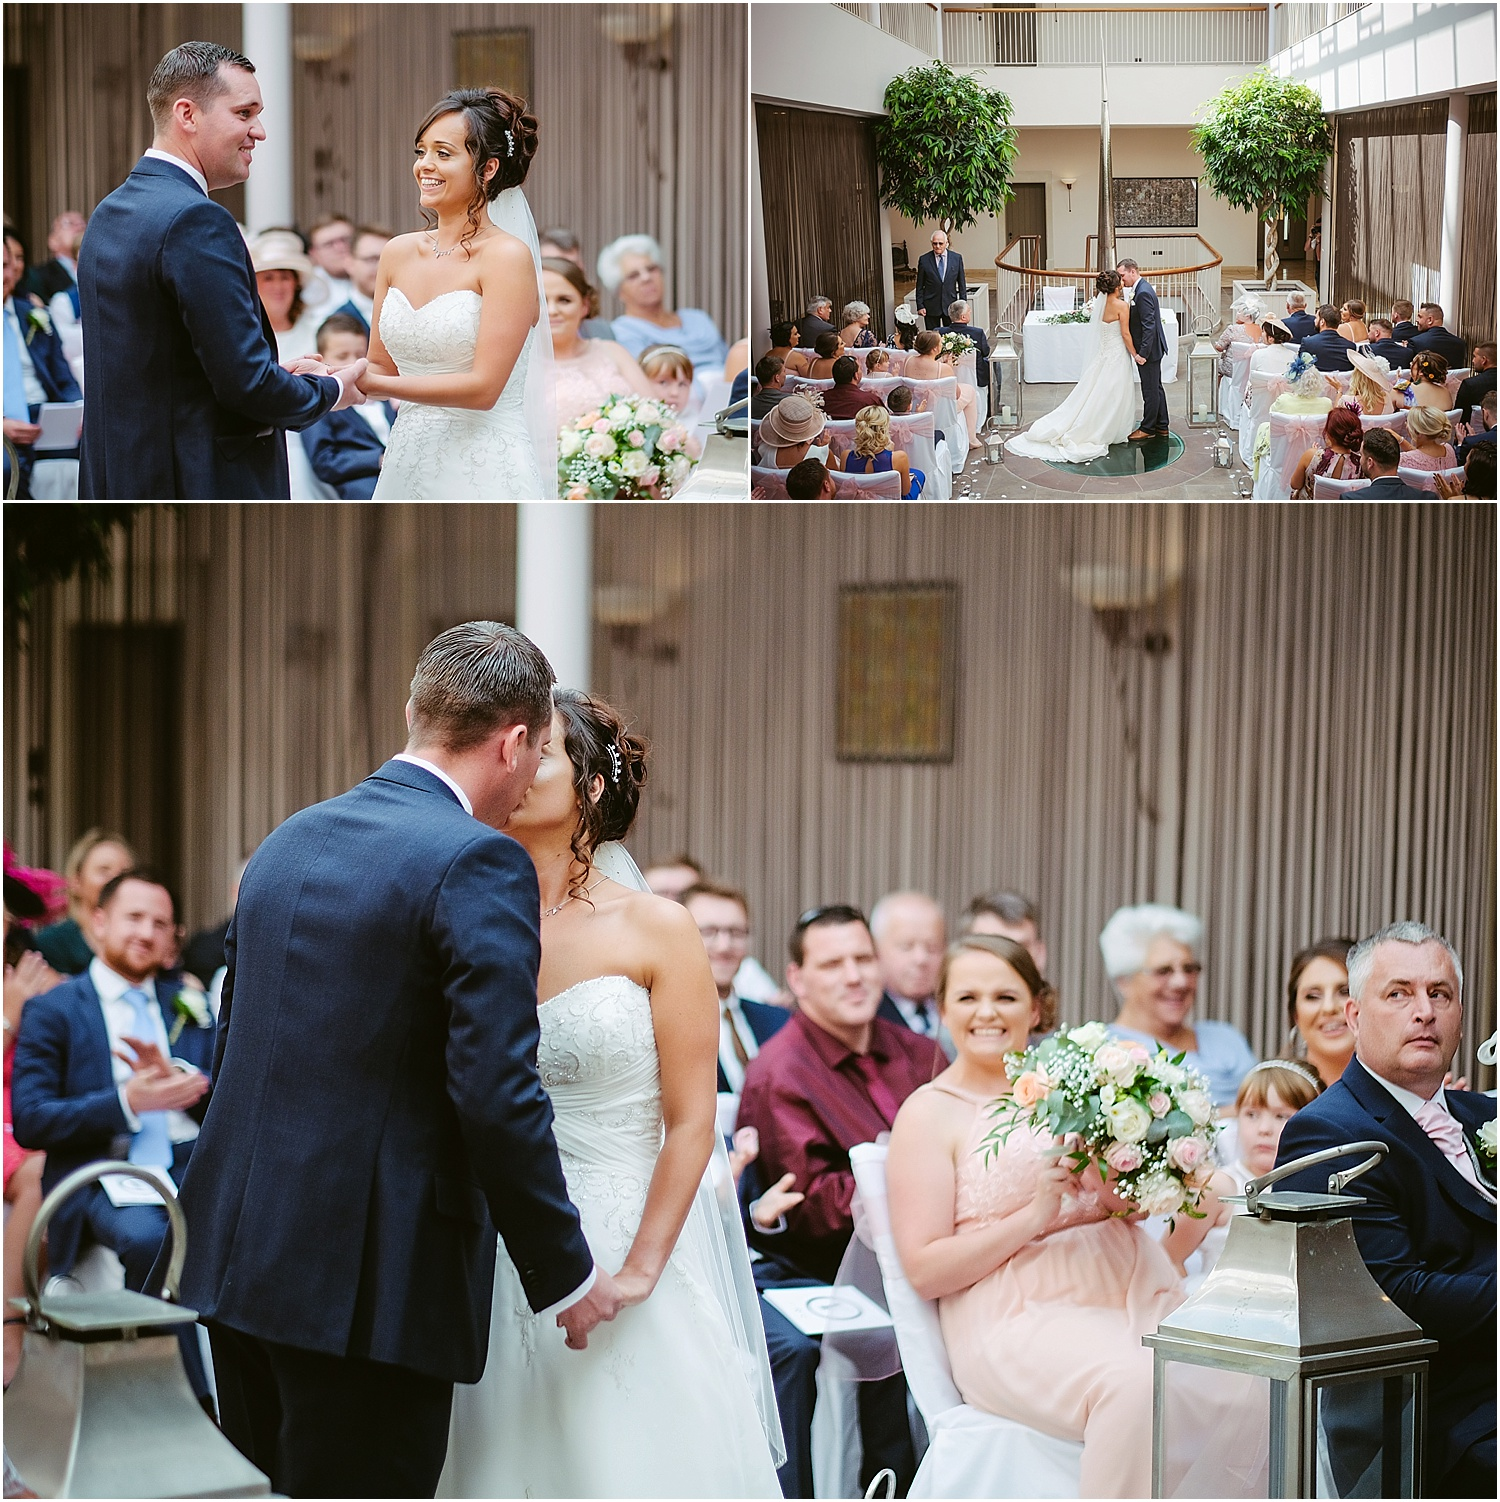 Wedding at Seaham Hall - wedding photography by www.2tonephotography.co.uk 040.jpg